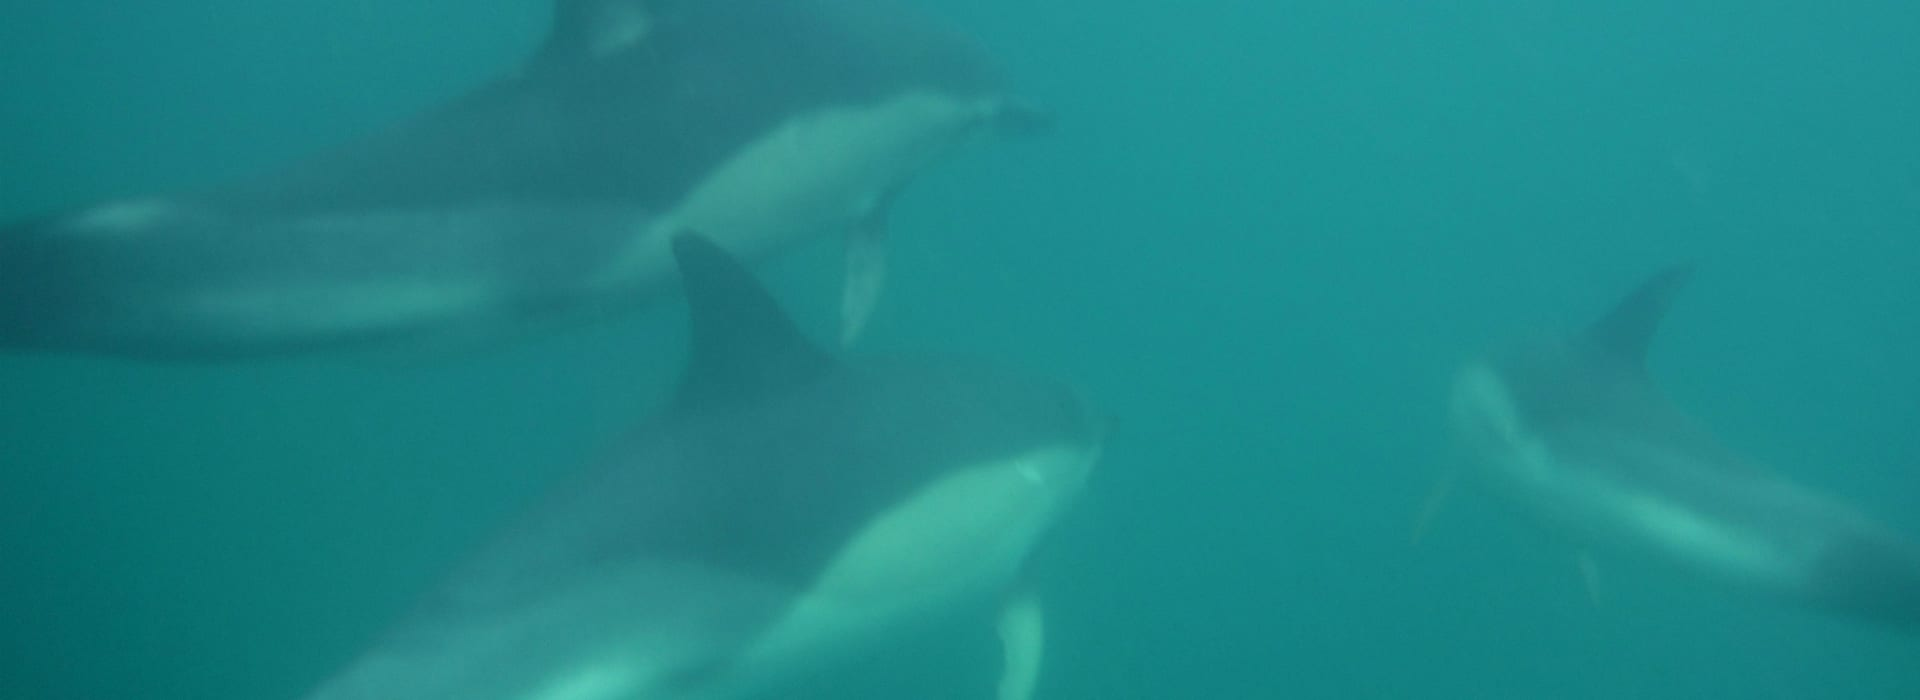 Dolphins spotted while on one of our jet ski safaris at lusty glaze beach newquay